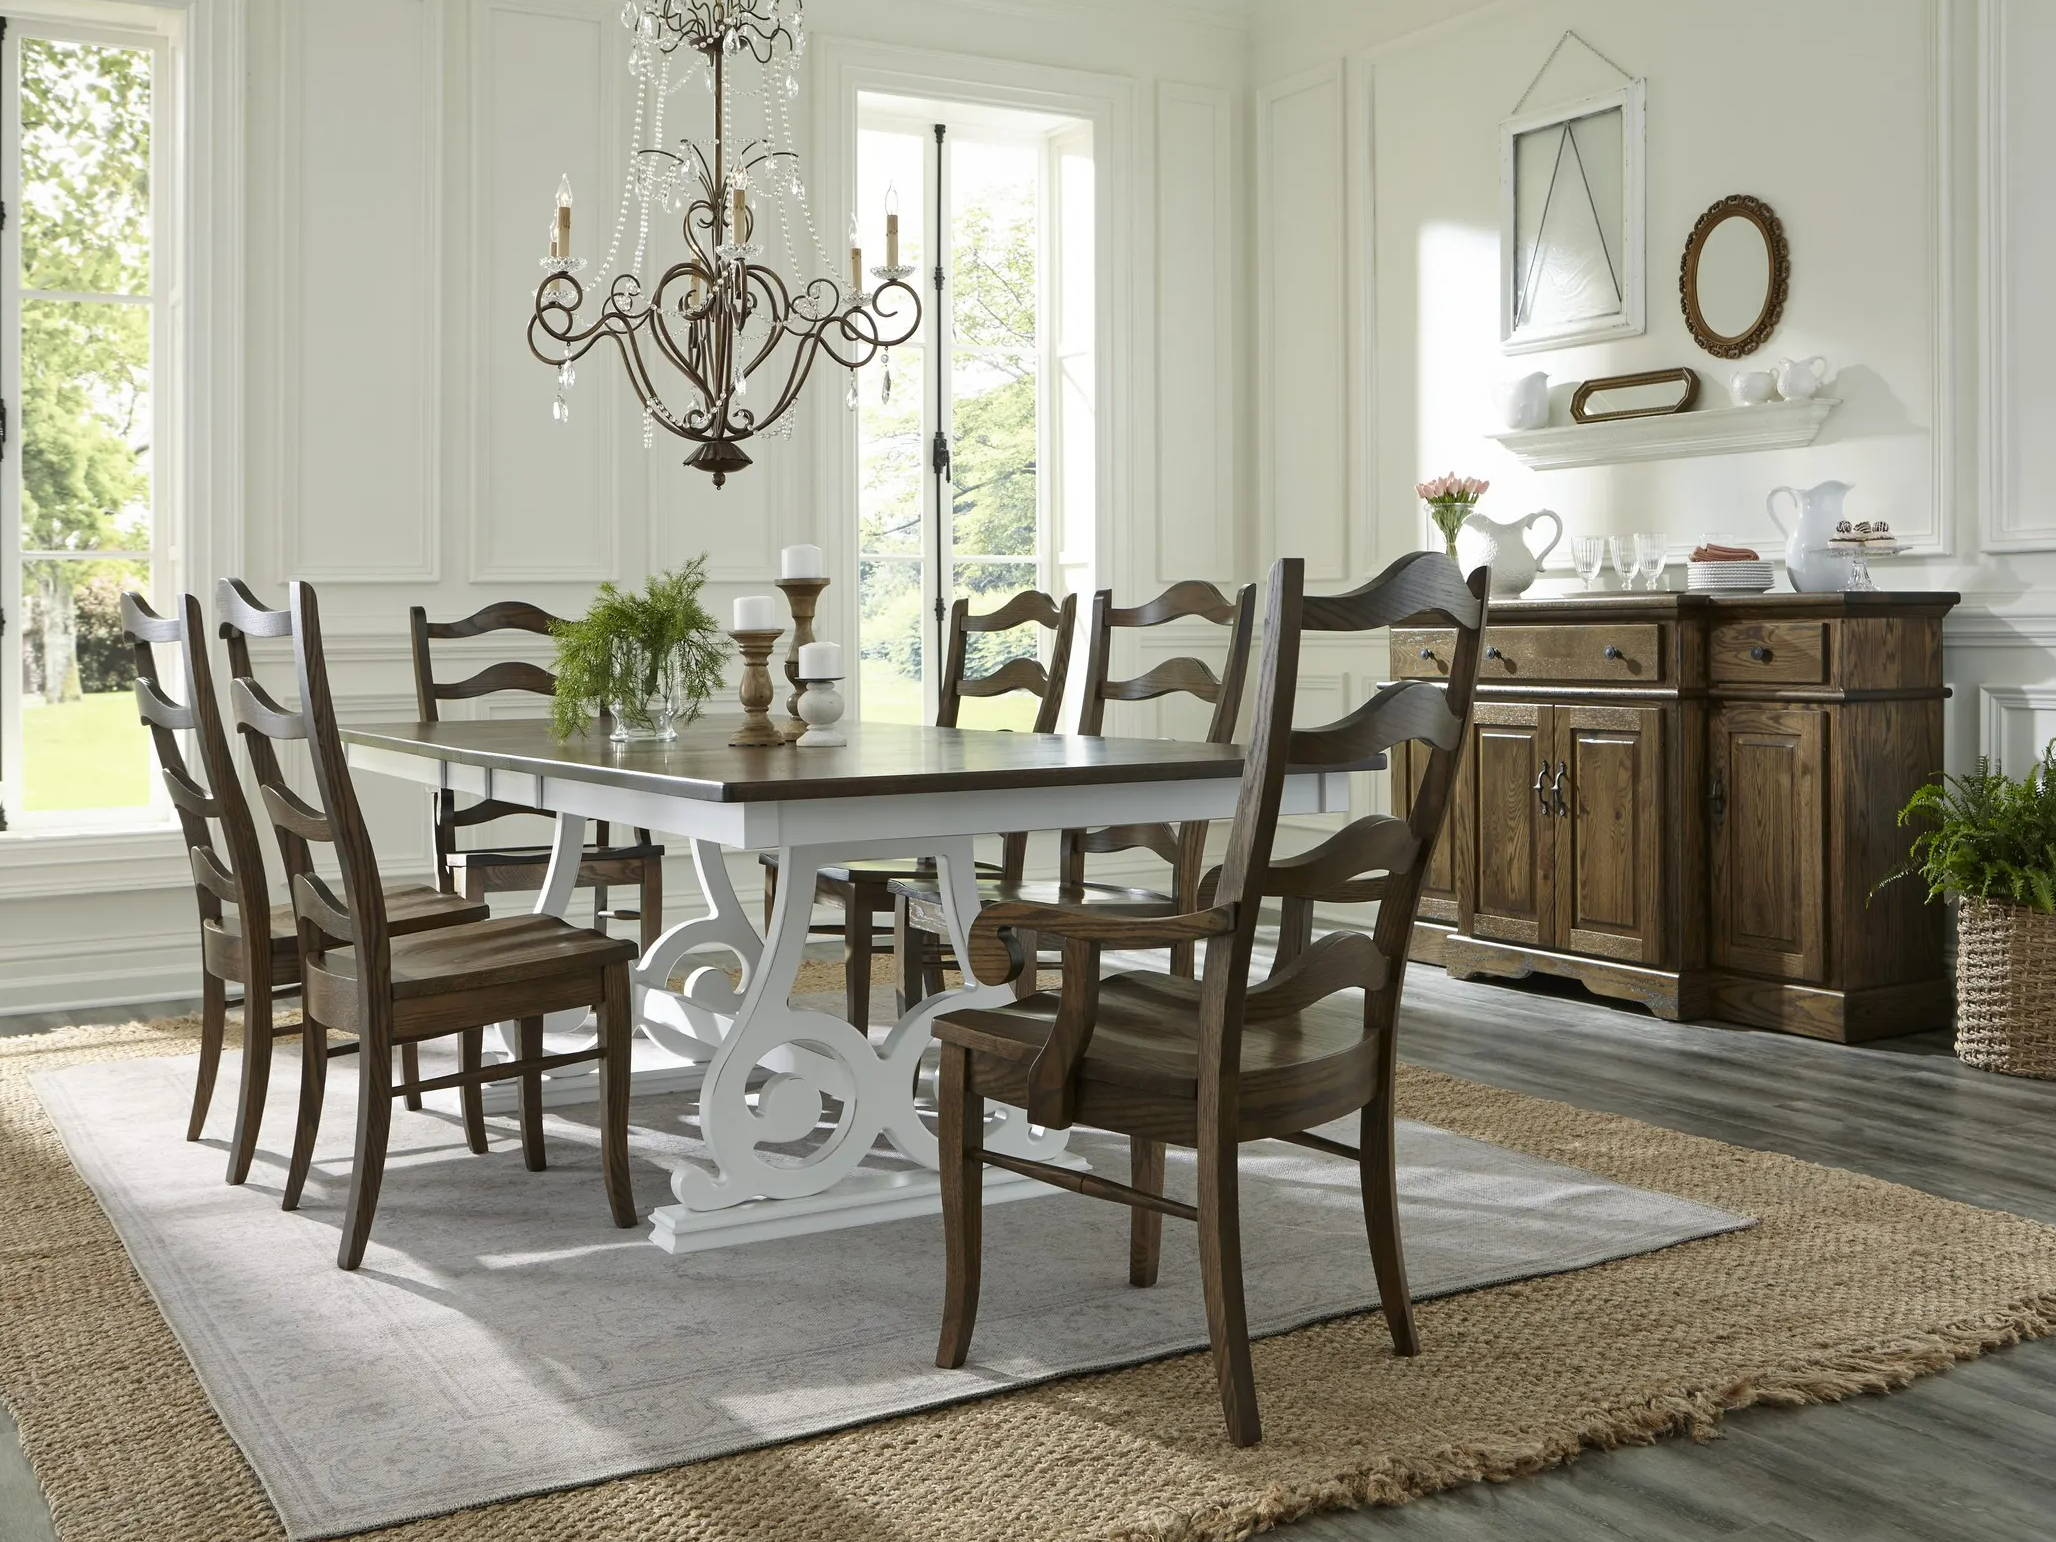 dining room scene with wood chairs around large table